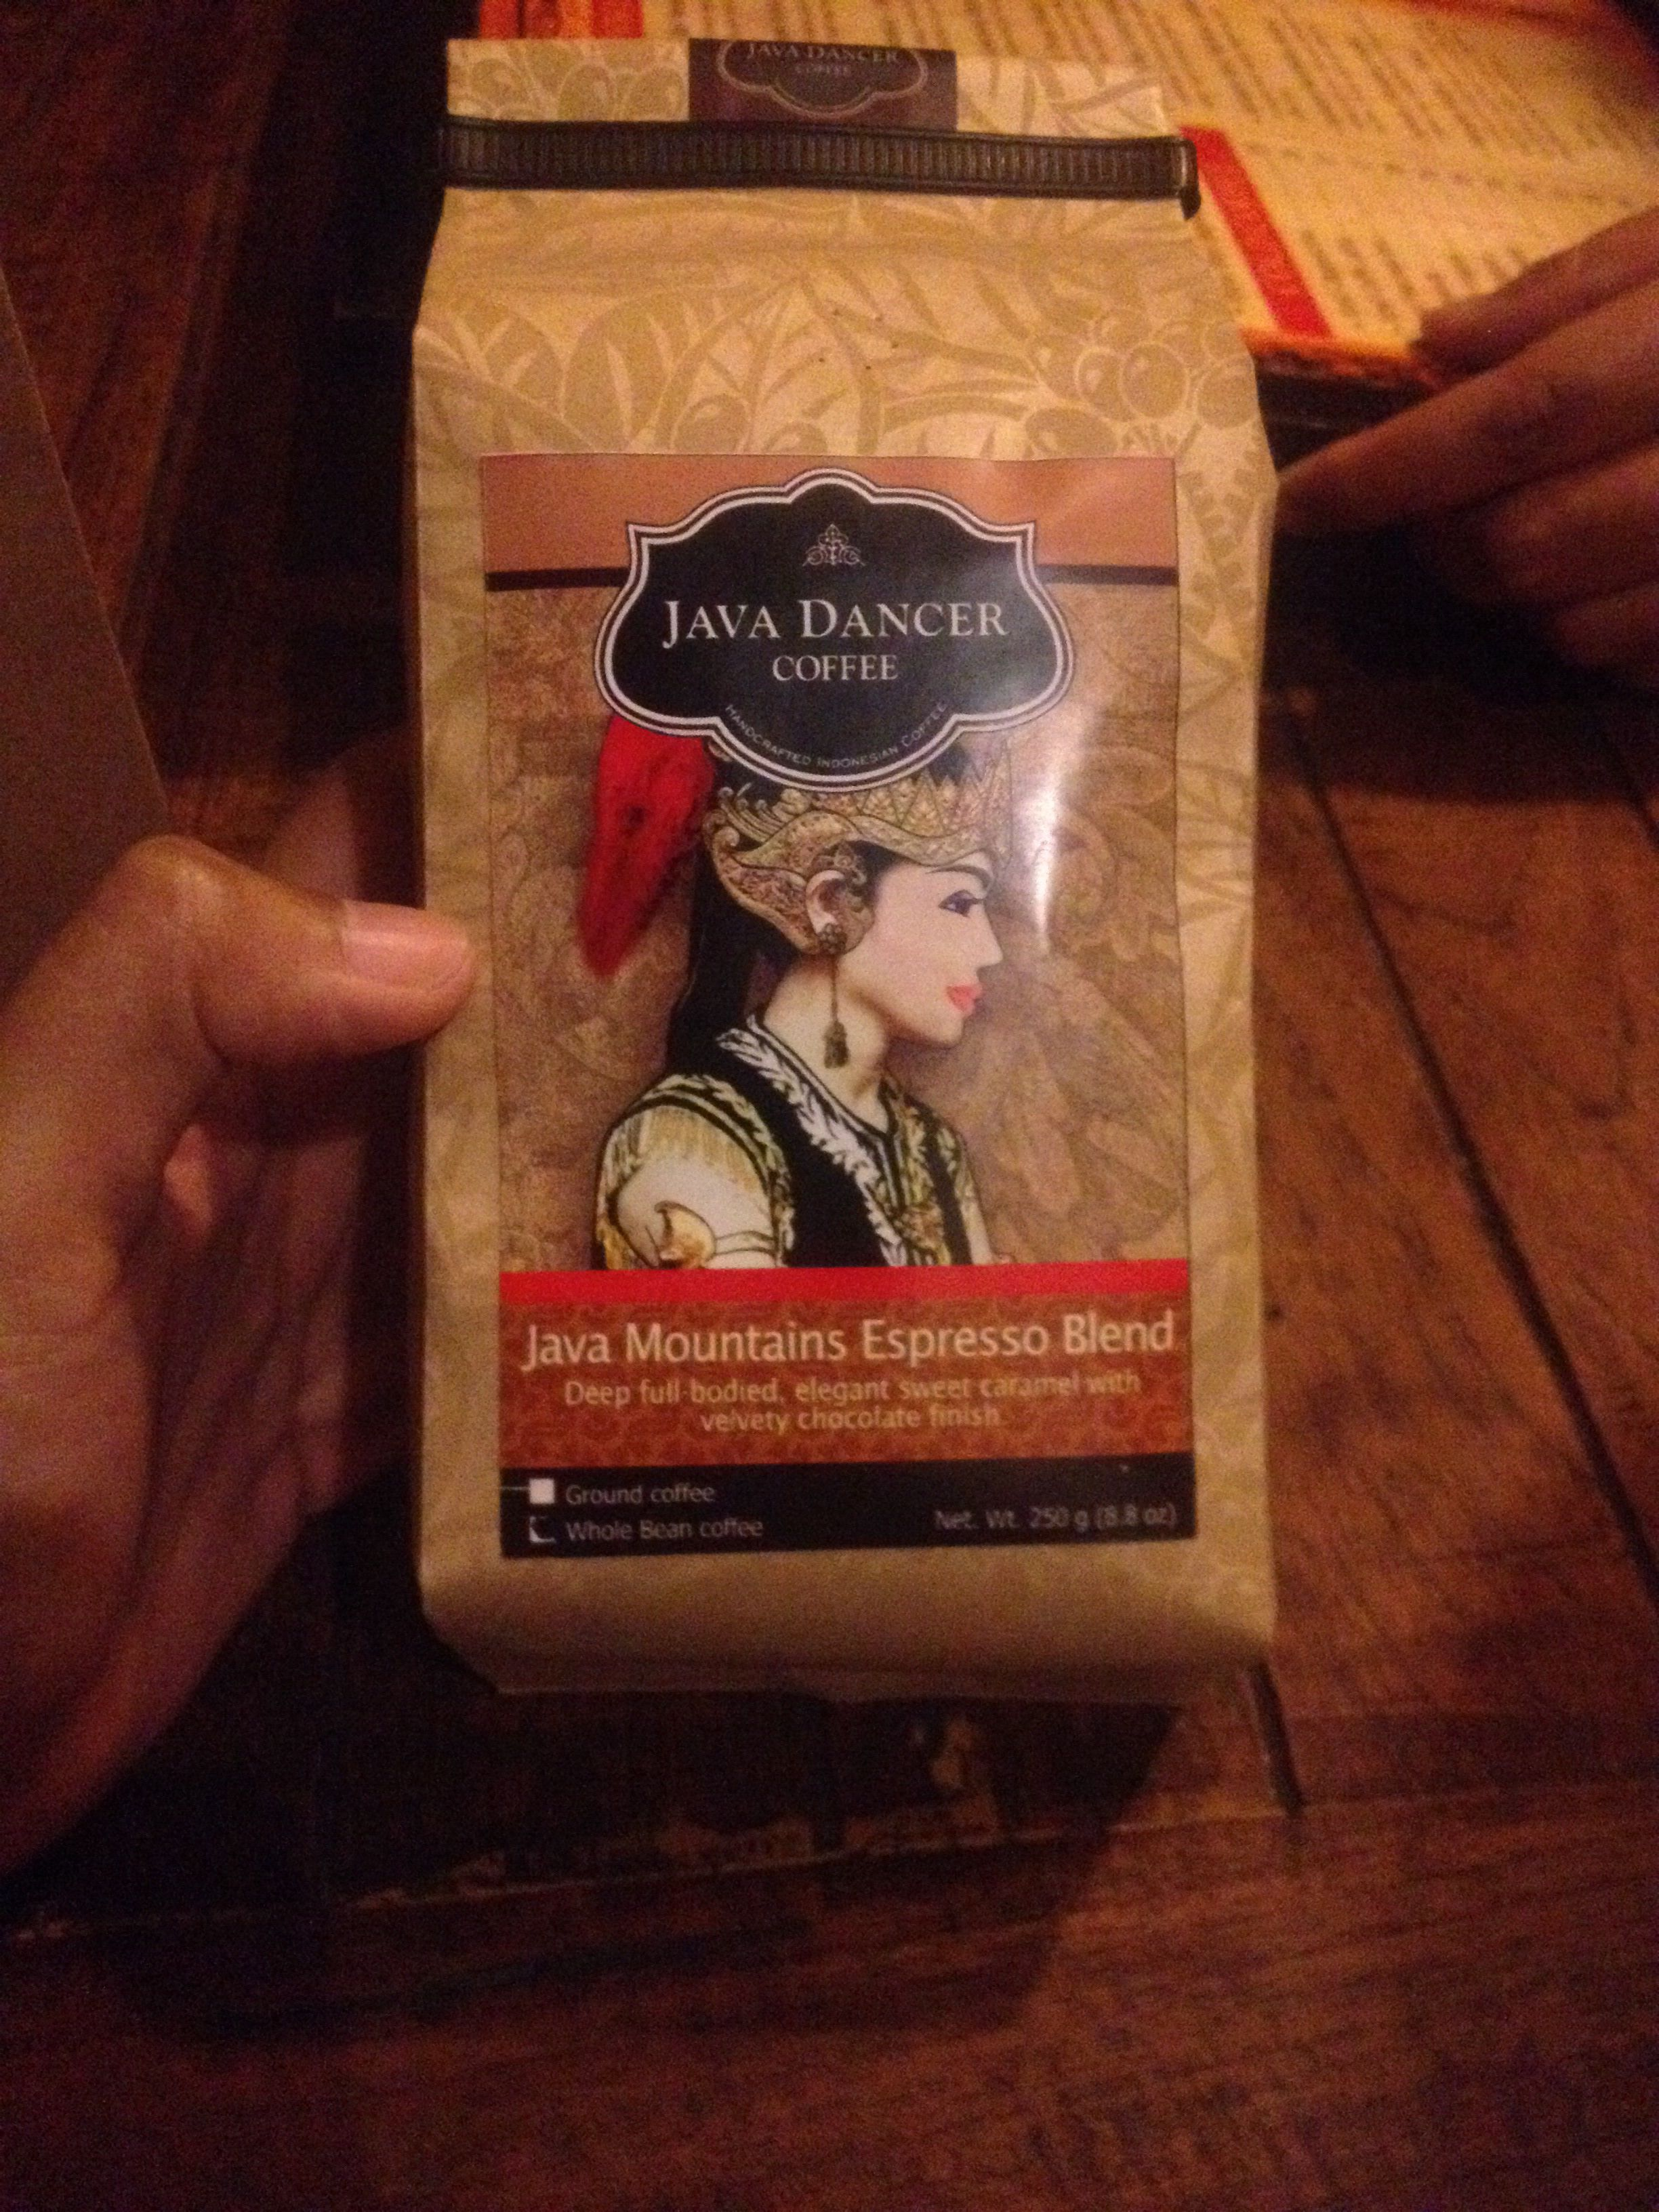 Java Dancer Malang East Java Note Not Jakarta An Expiry Date Rather Than A Roasting Date On The Package Should Have Buy Coffee Beans Coffee Beans Beans